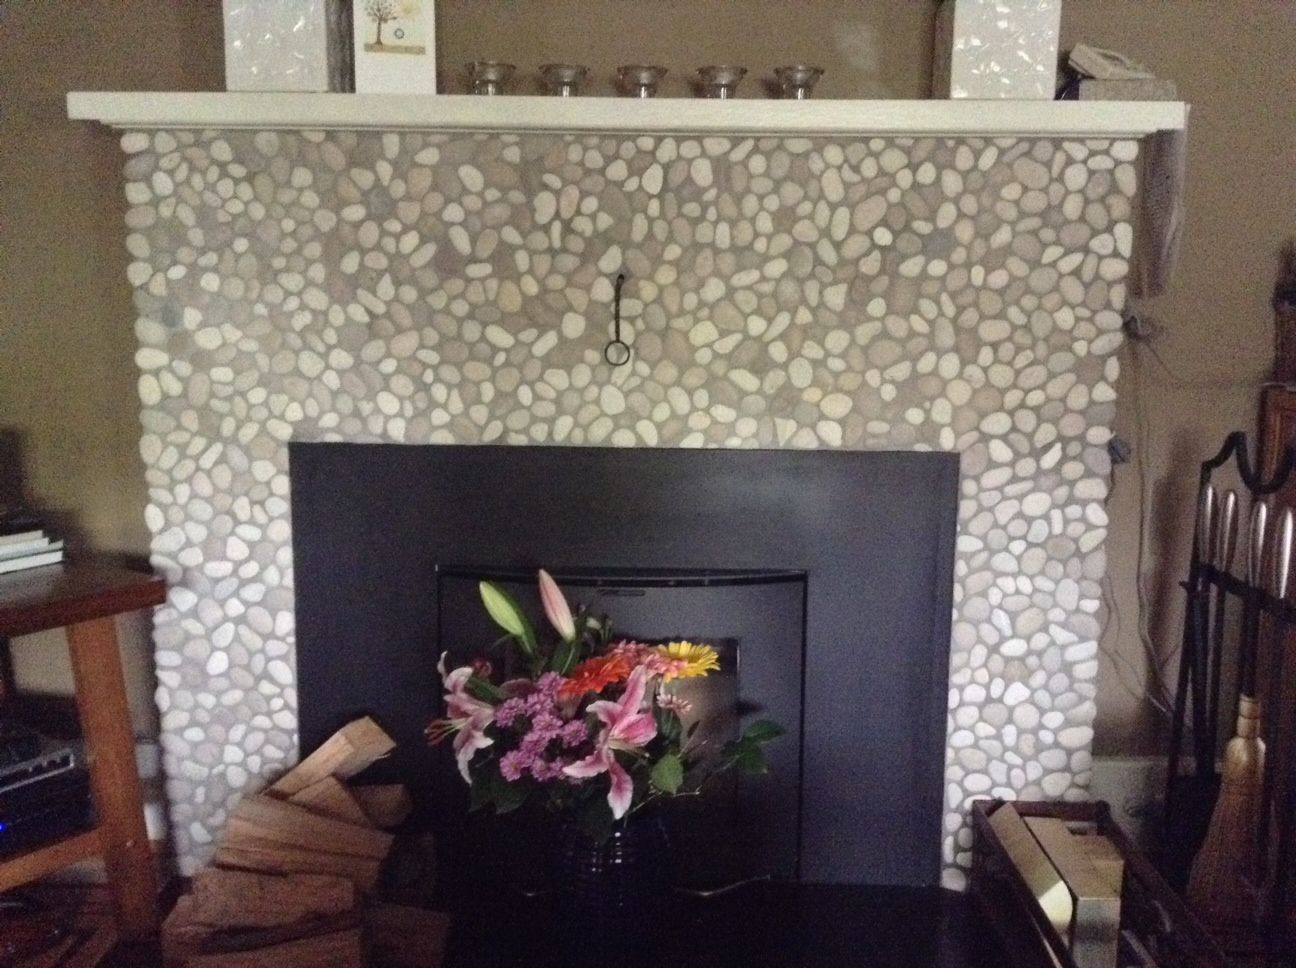 Your home improvements refference mosaic tile fireplace surround - Java Tan And White Pebble Tile